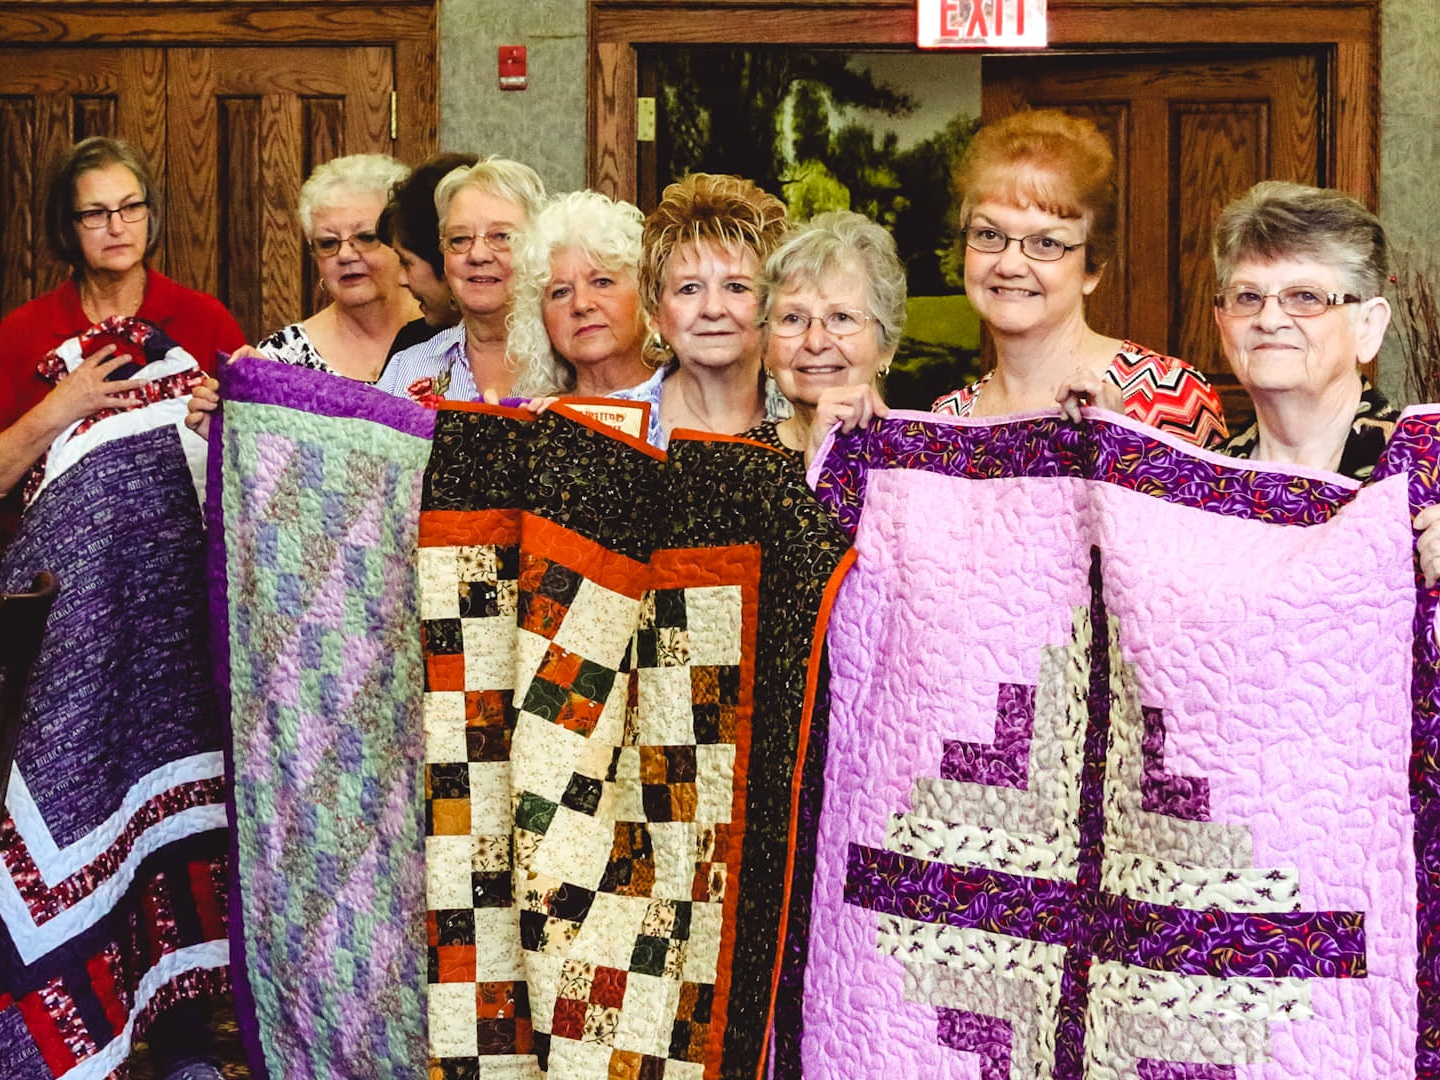 Group+holding+quilts.jpg